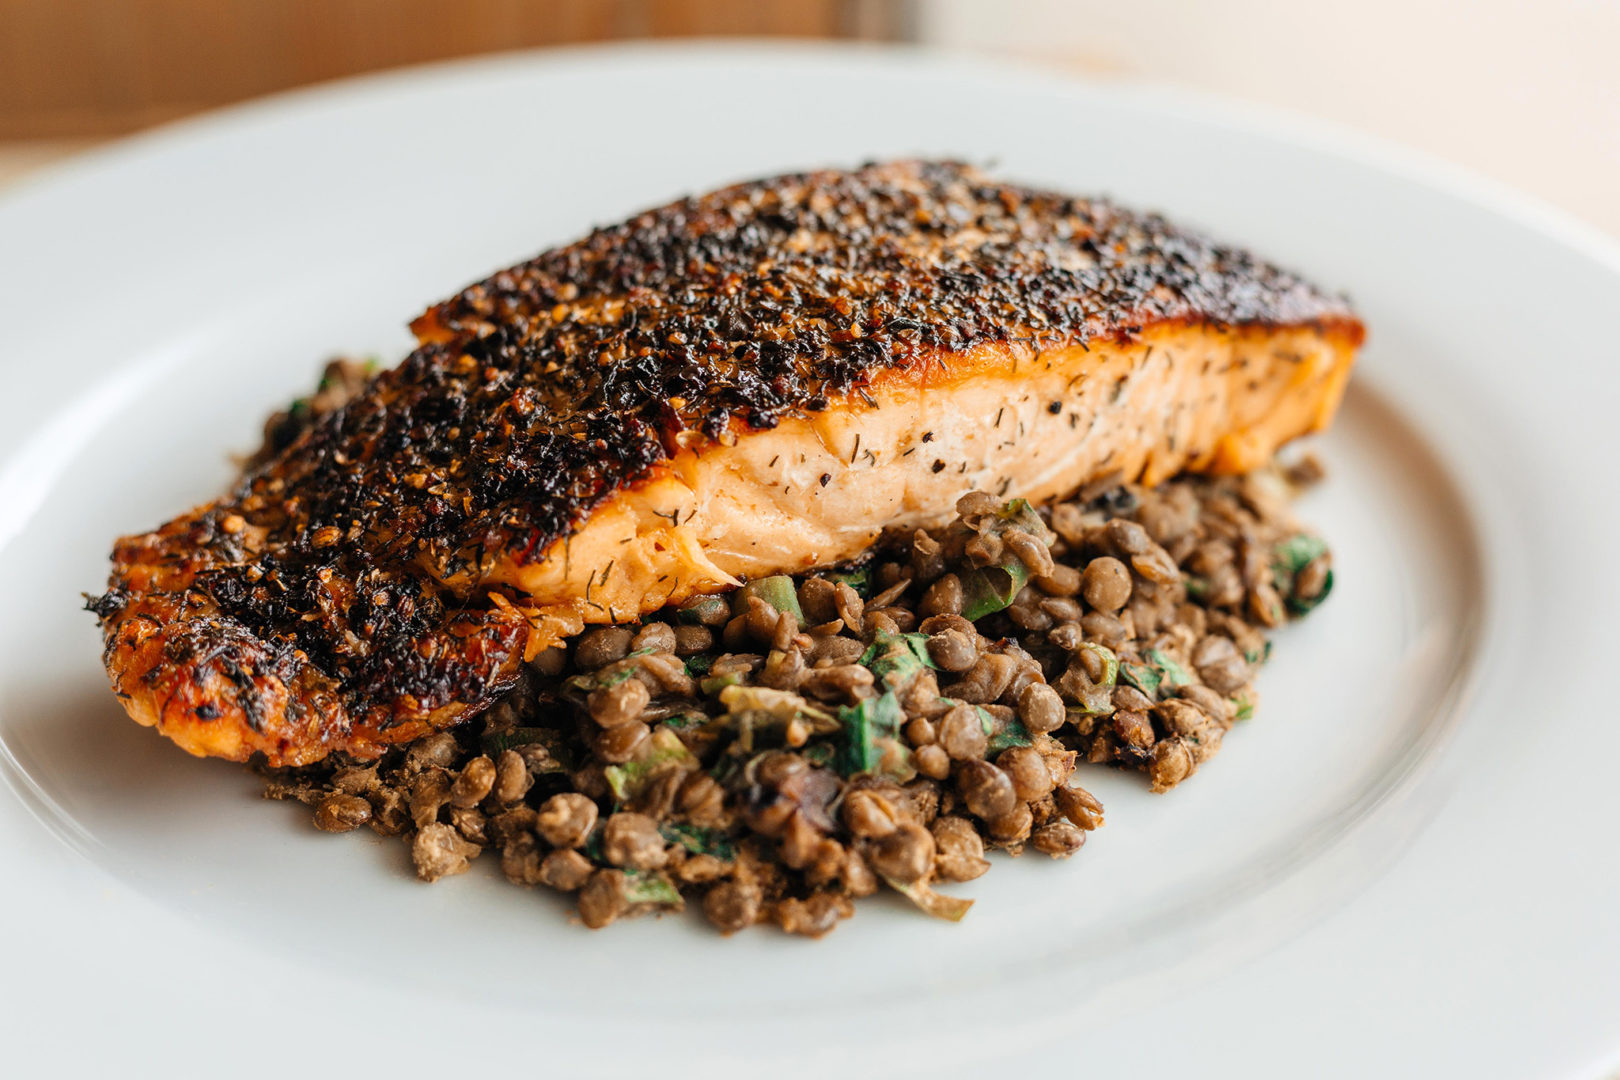 Lemon Lime Salmon with French Green Lentils